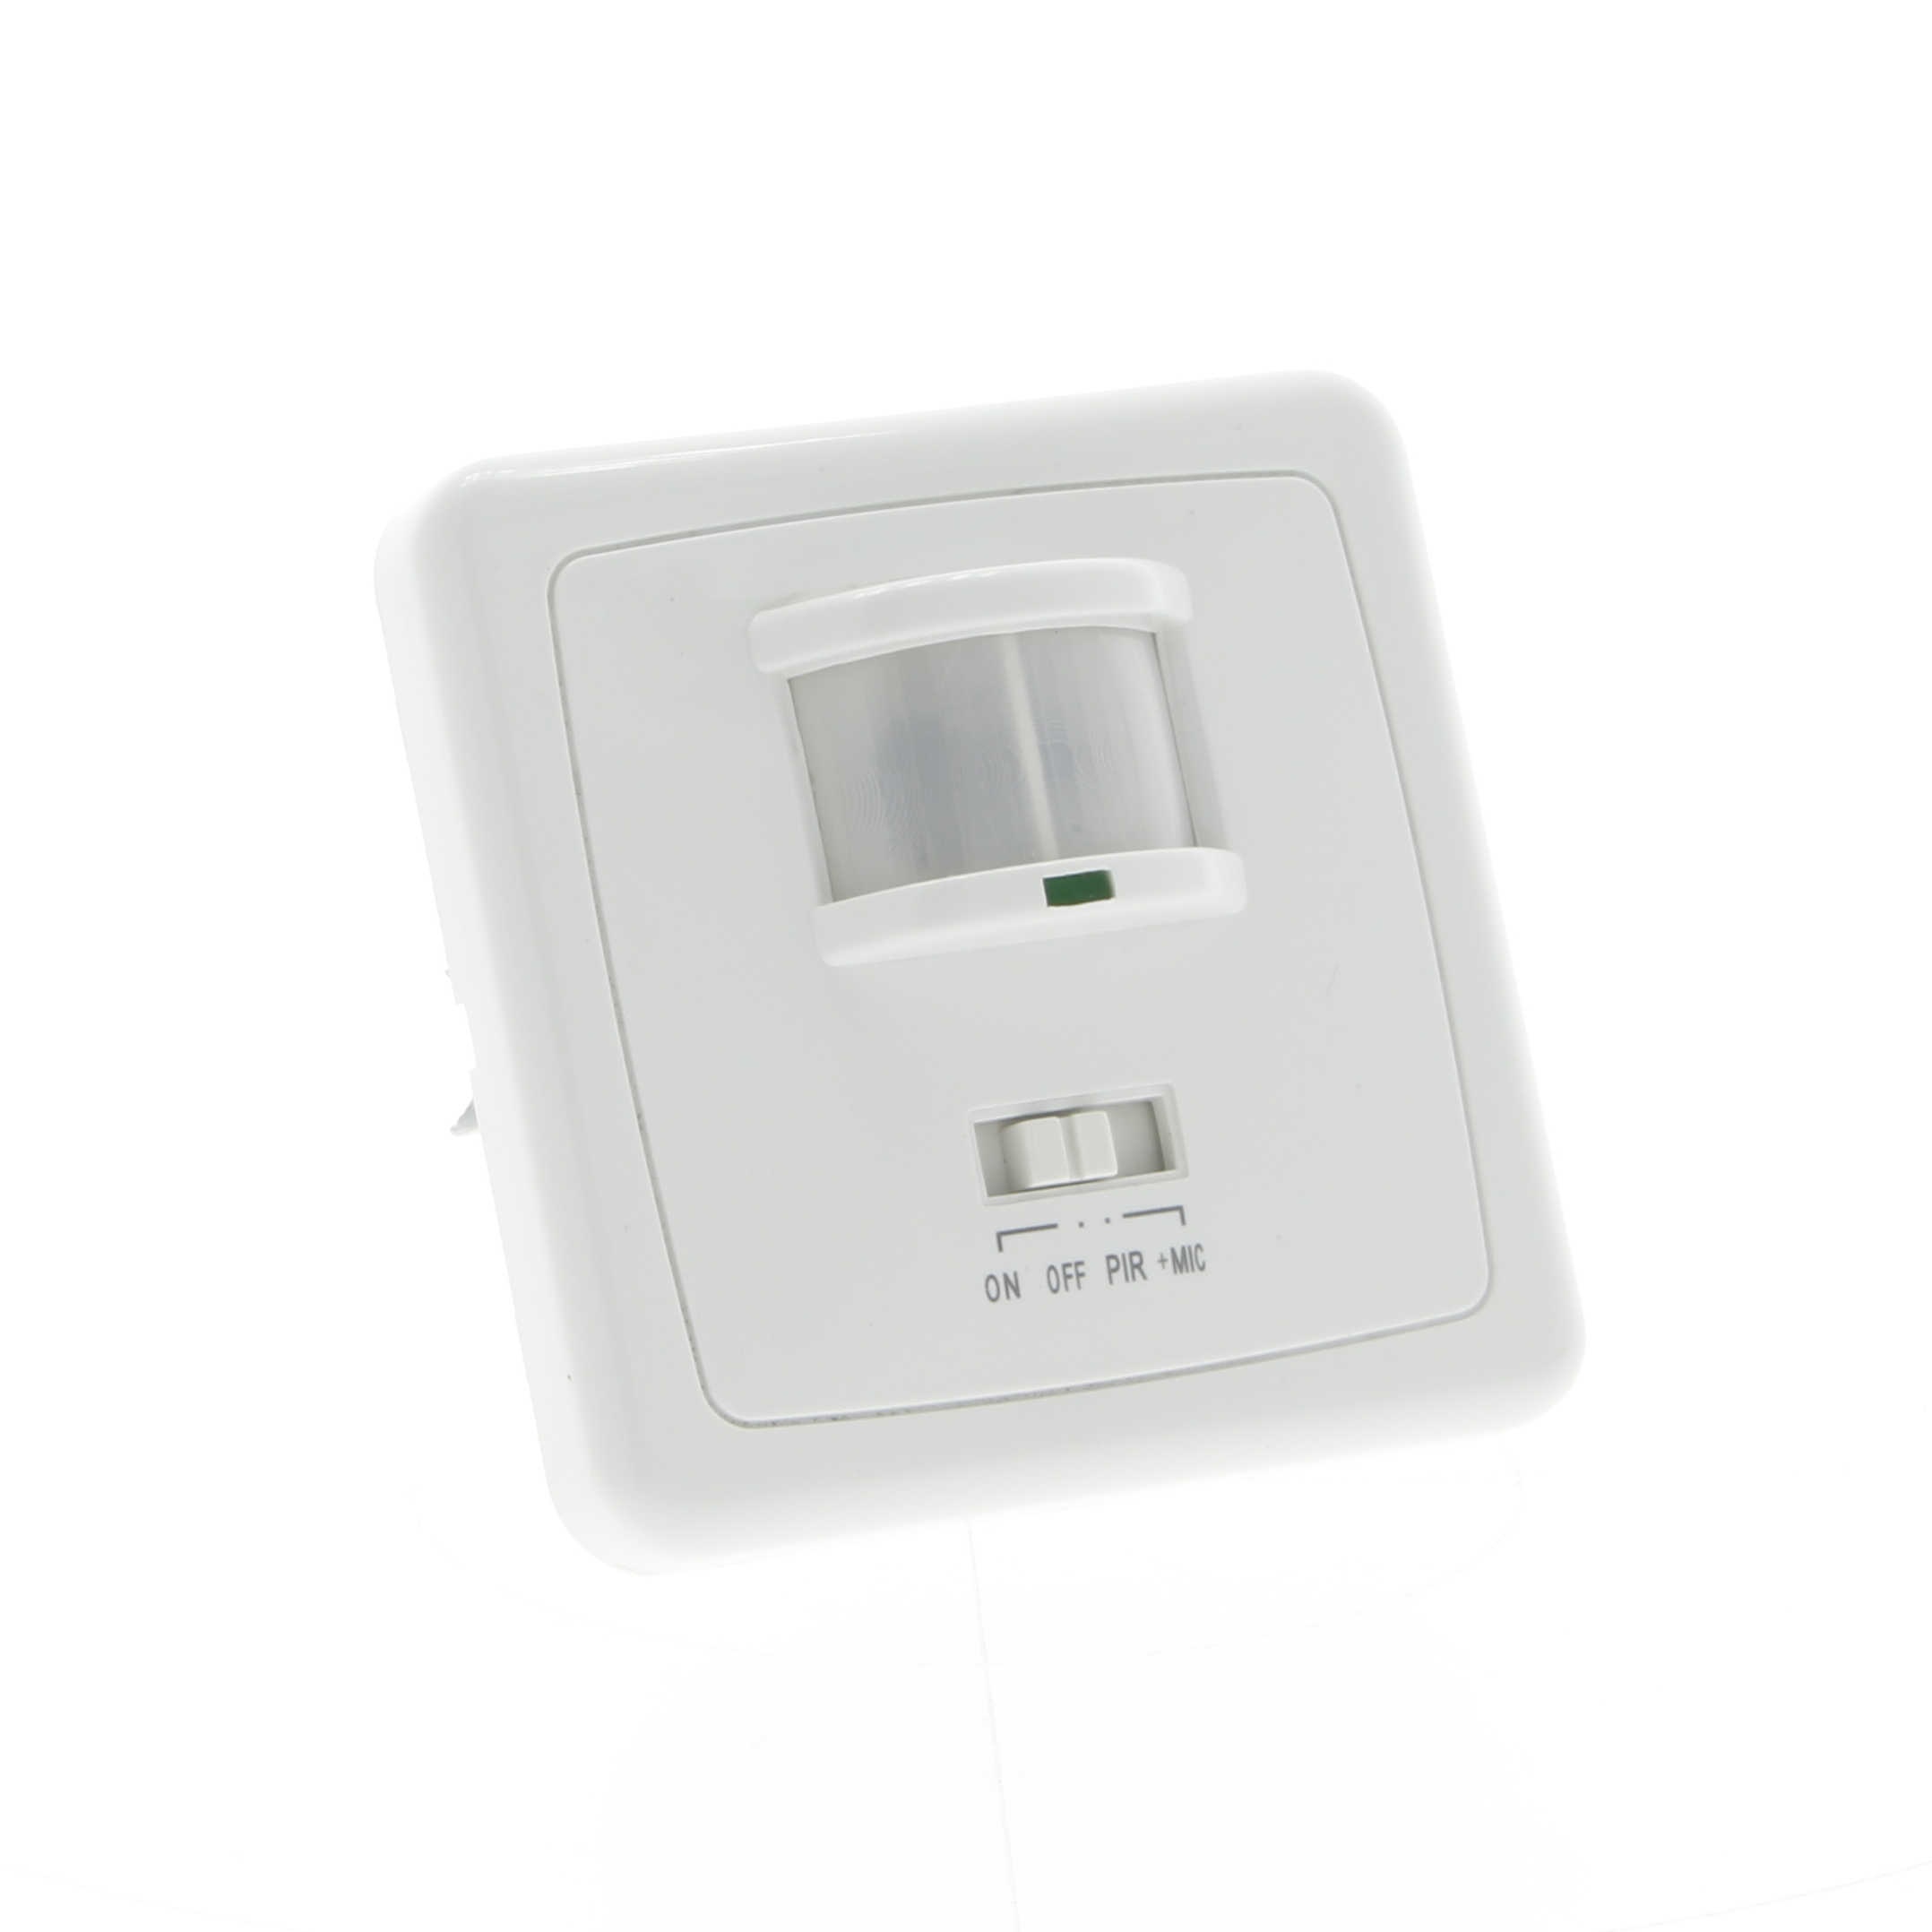 MOTION DET WALL MOUNTED 500W 120°